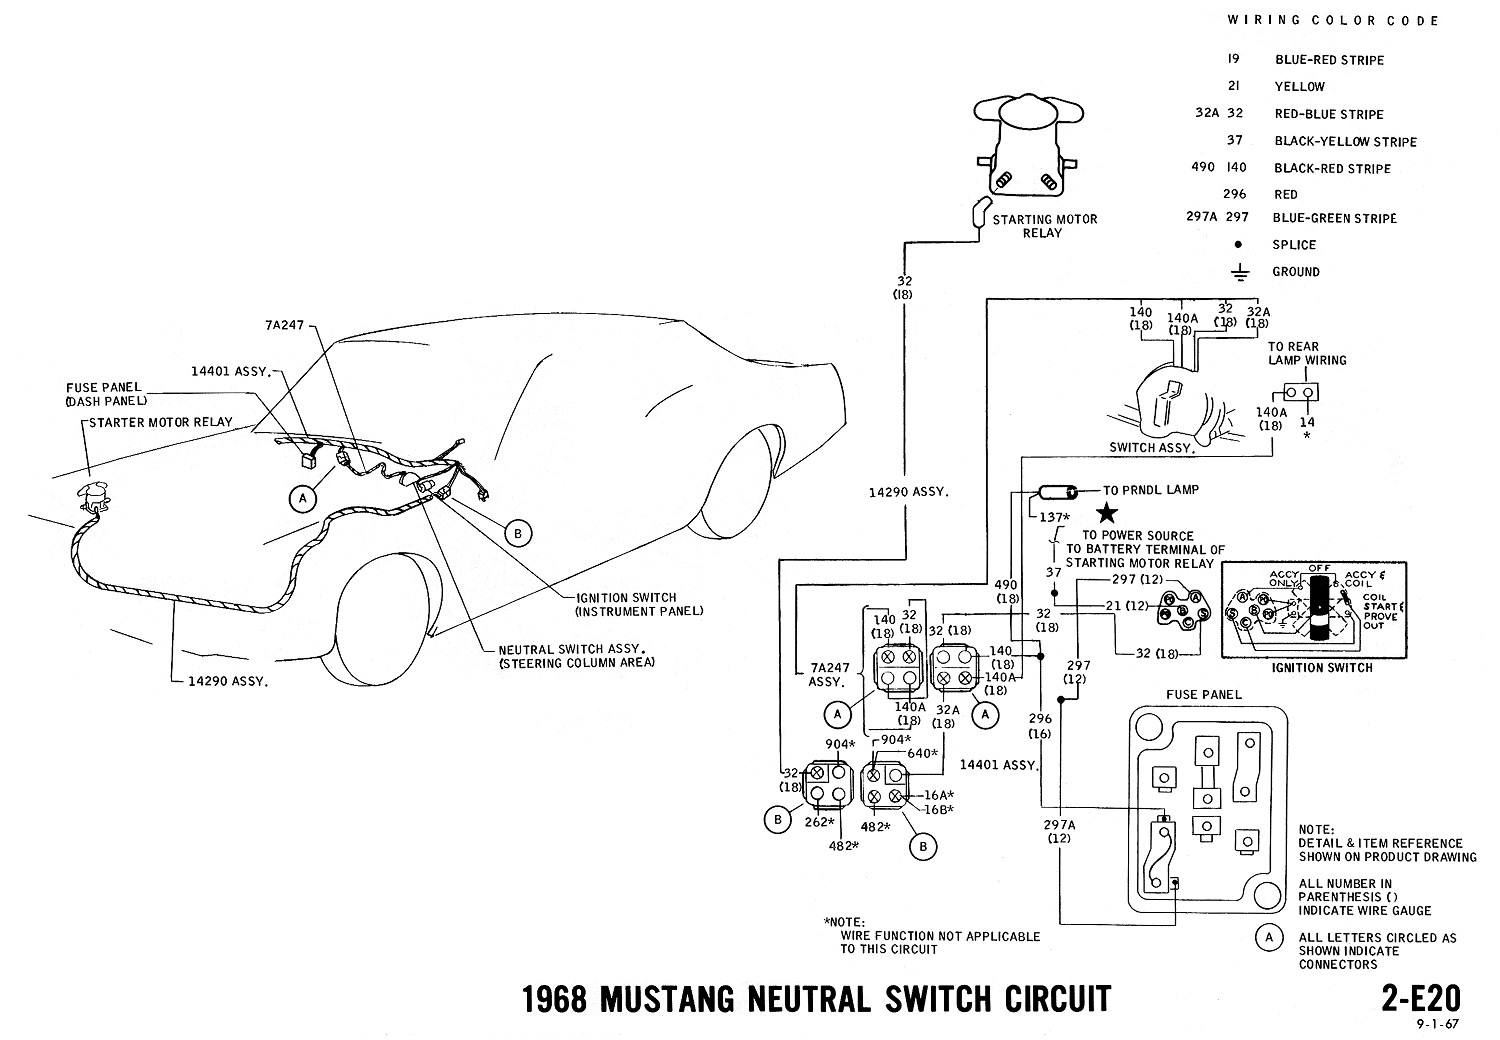 1968 Ford Mustang Ignition Wiring Diagram 1987 Cougar Image Not Found Or Type Unknown